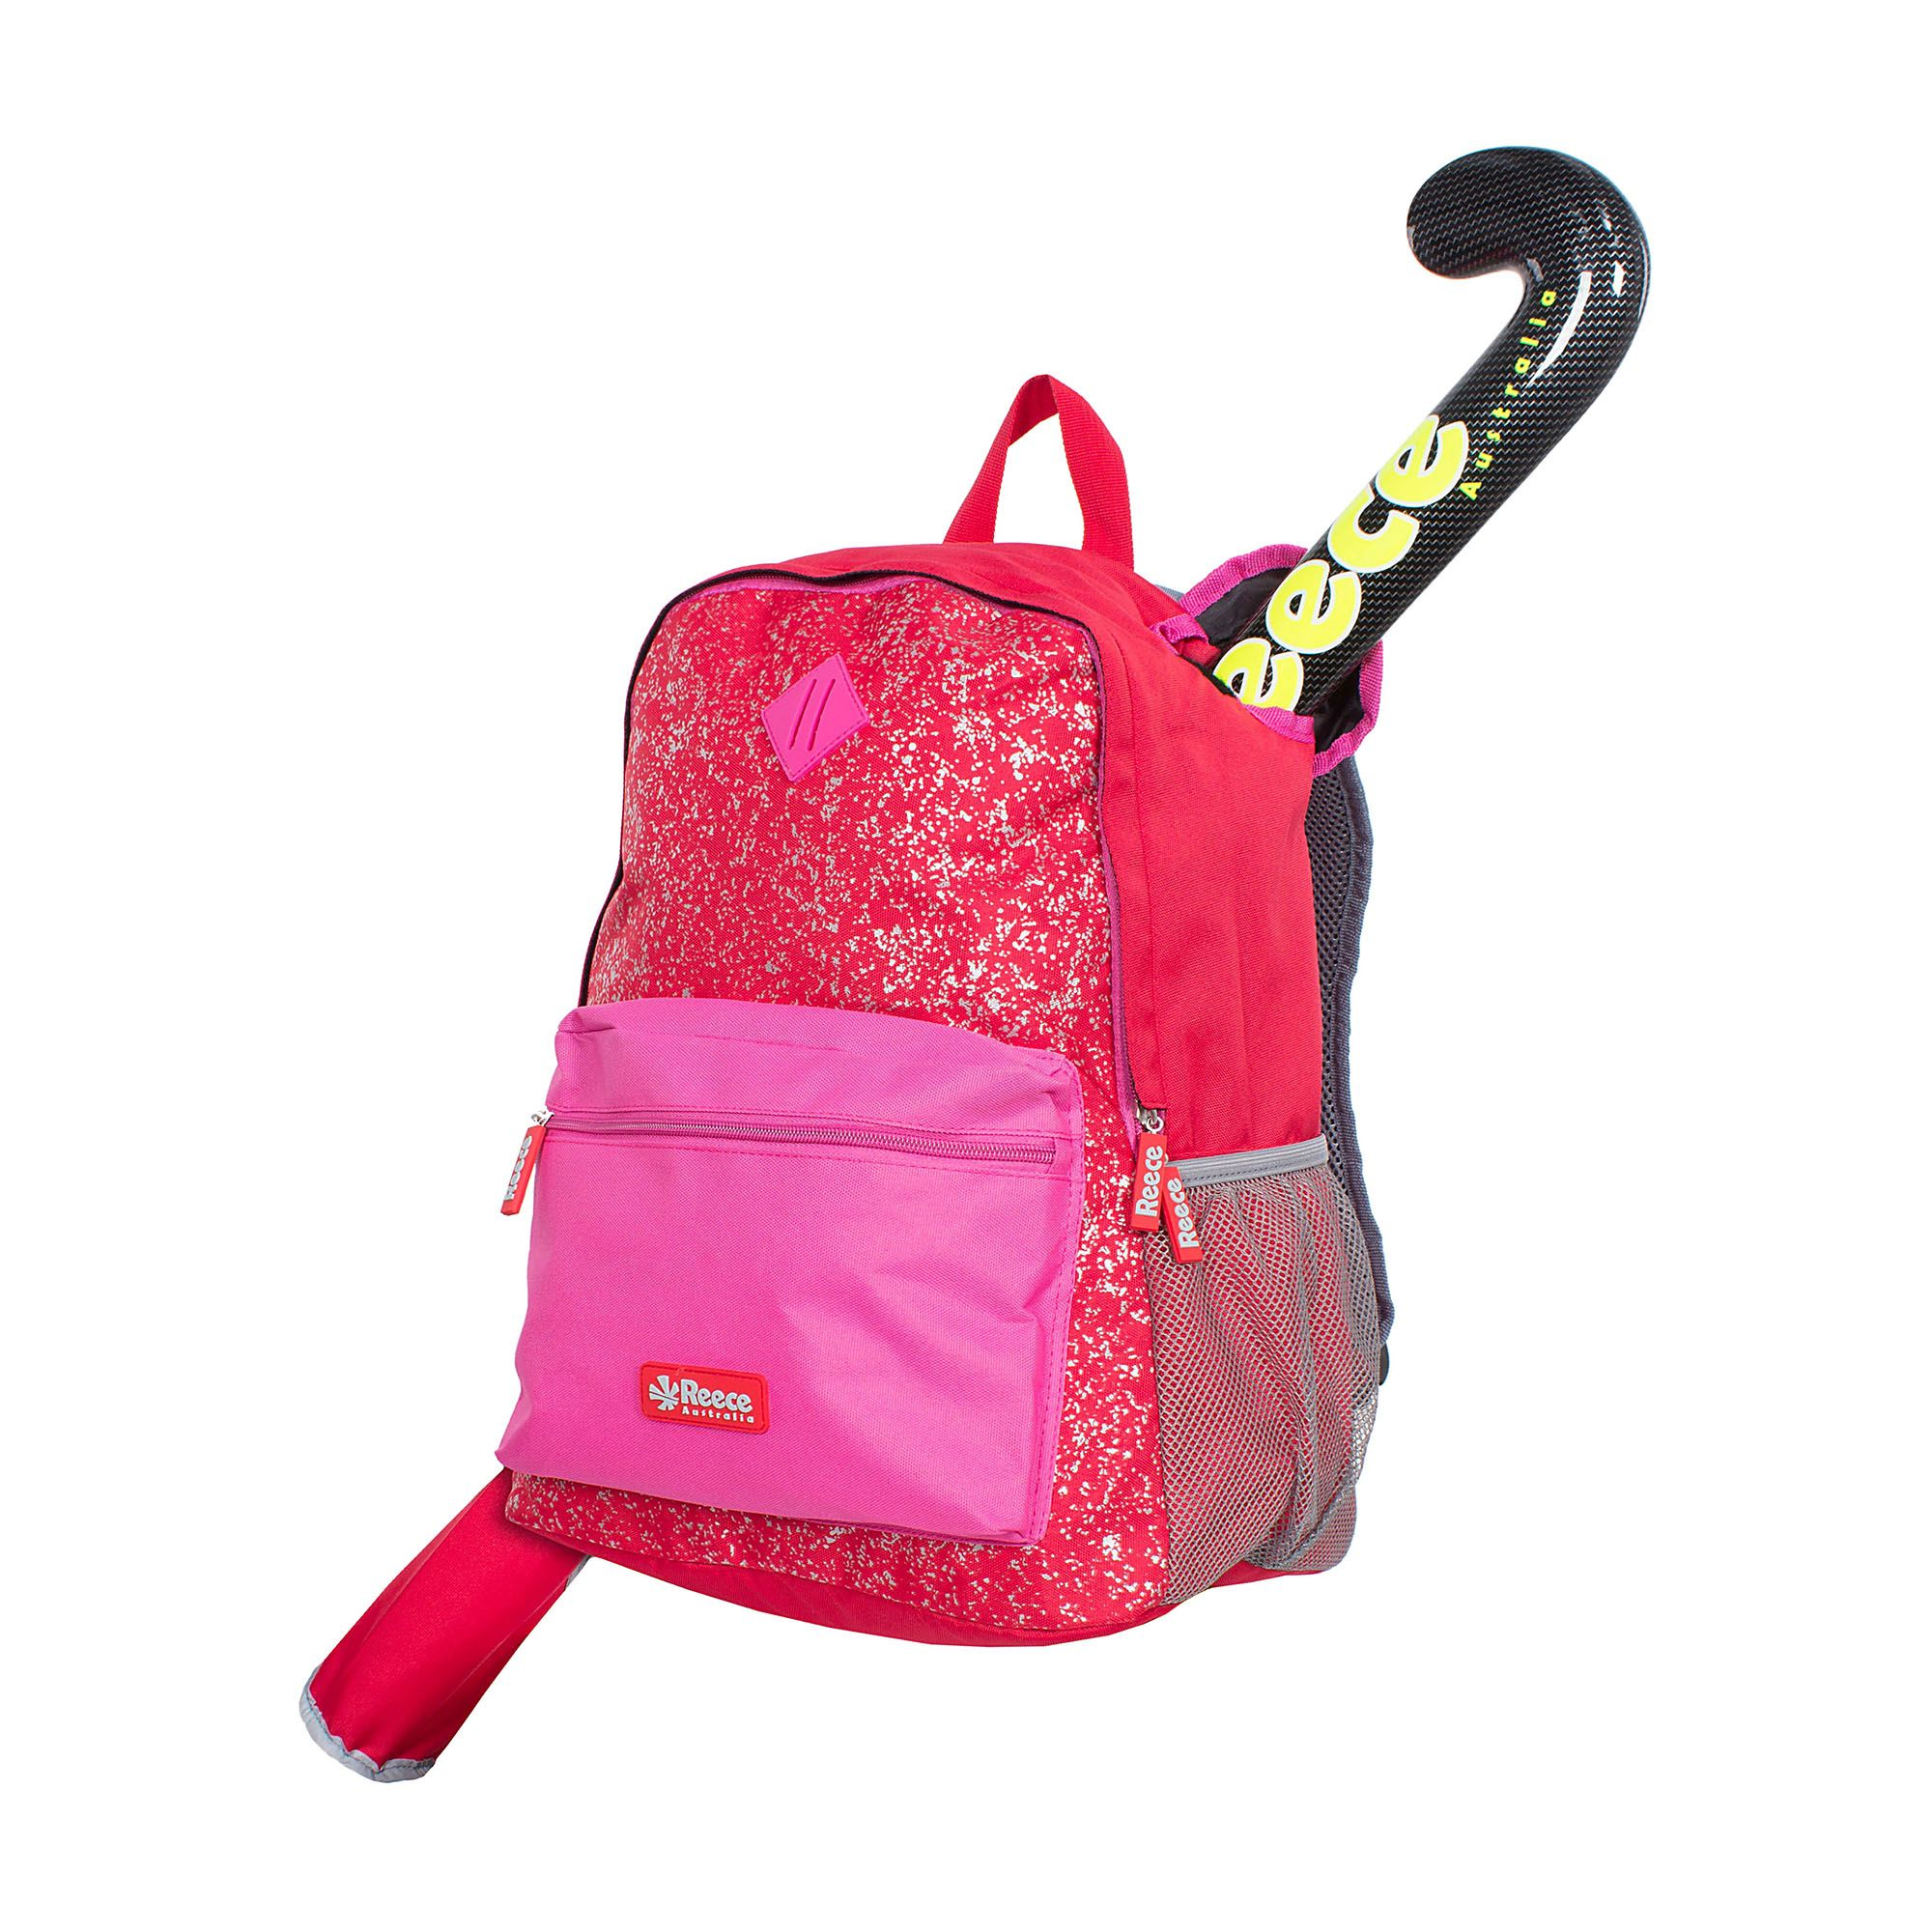 68969277374 Northam Backpack-885813-0060-NO SZ-Pink-Reeceaustralia.com